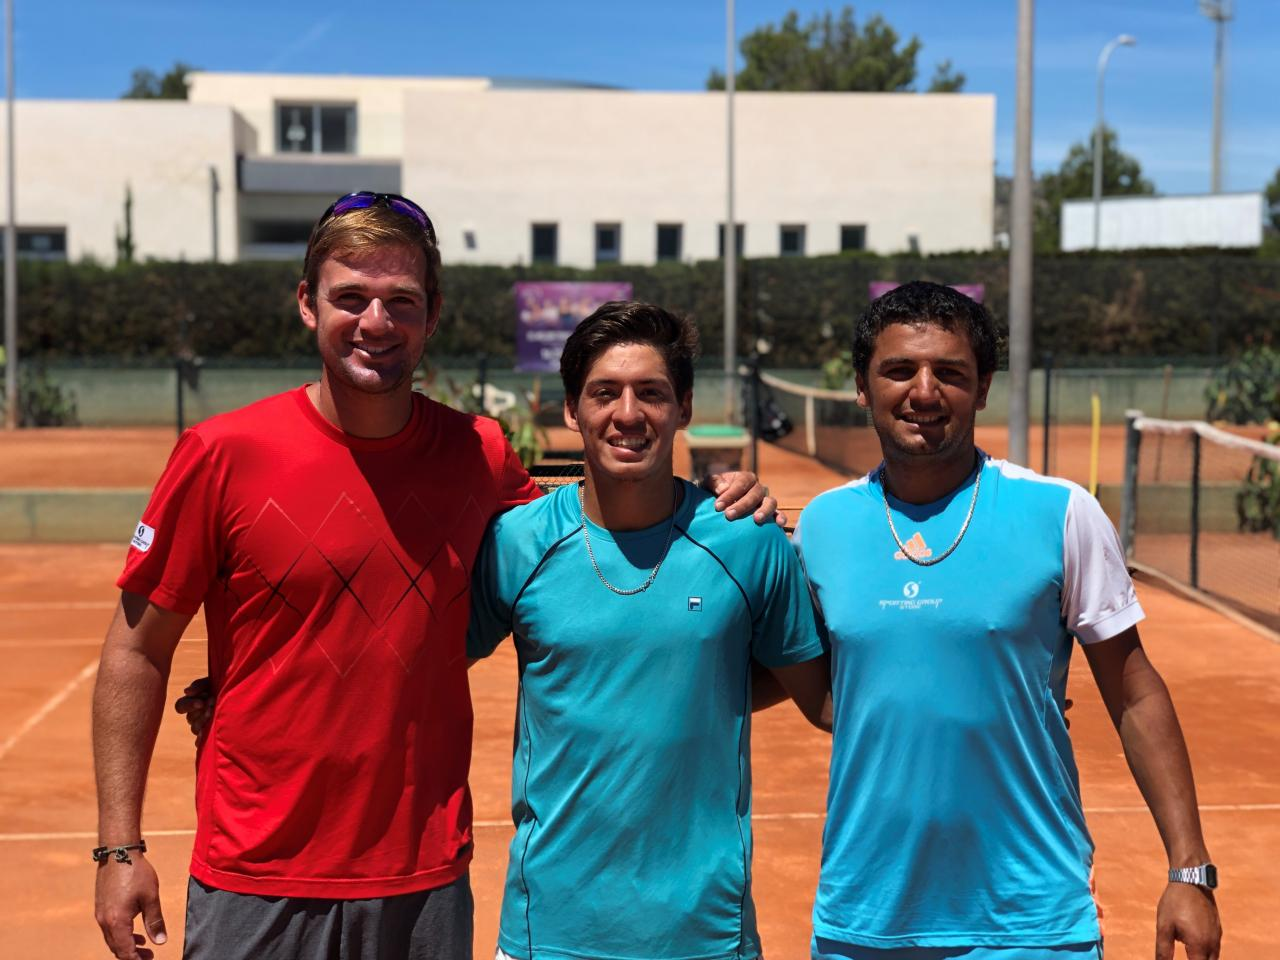 Vinicius Emanuel de Oliveira is the coach and co-founder of Unity tennis